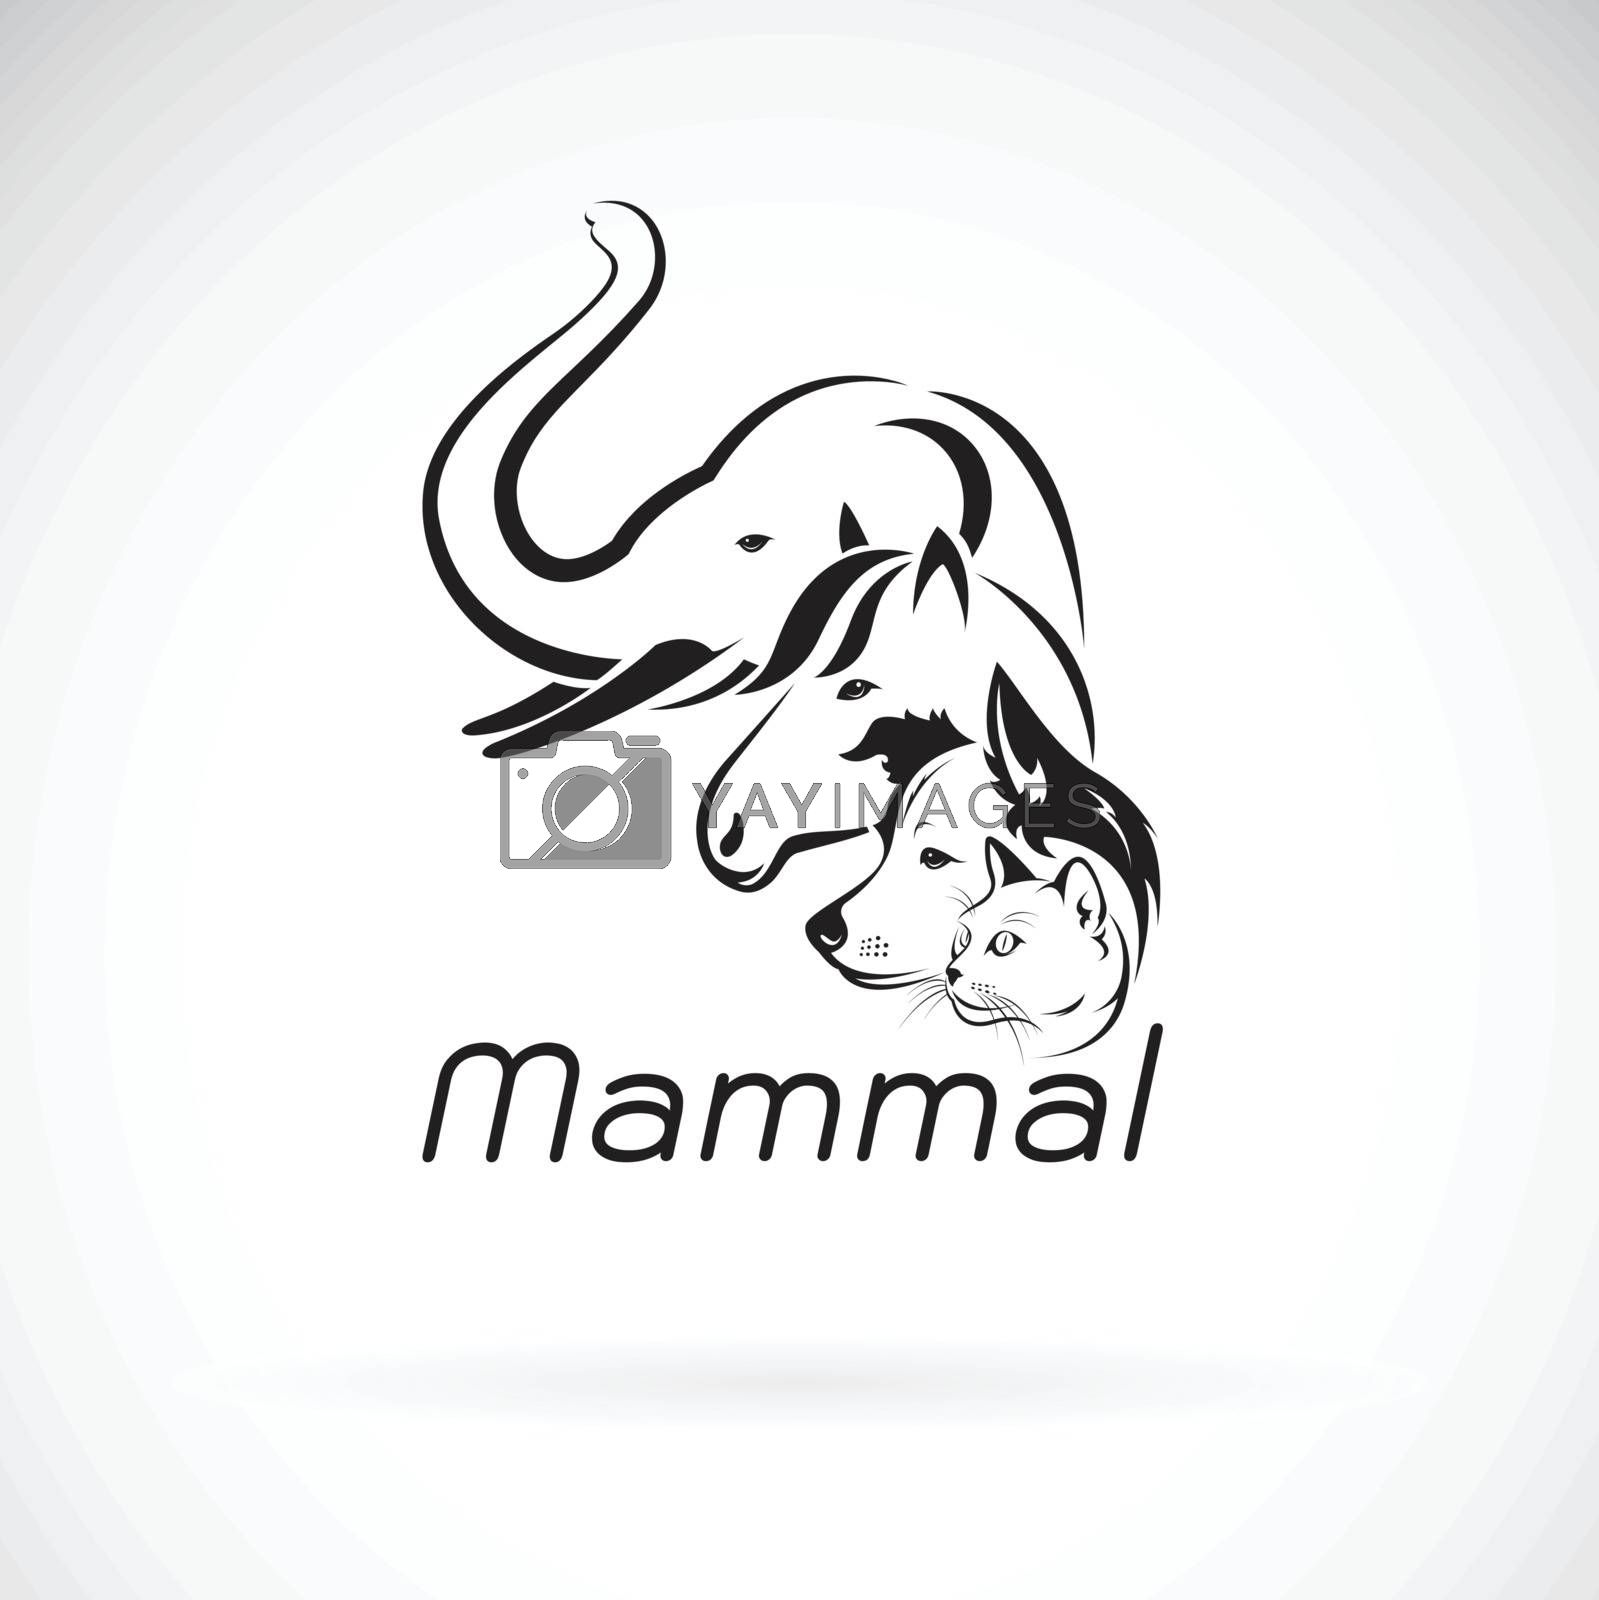 Vector of mammal group design on white background., Elephant, Horse. Dog. Cat.,  Animals. Pet. Mammal logo or icon. Easy editable layered vector illustration.